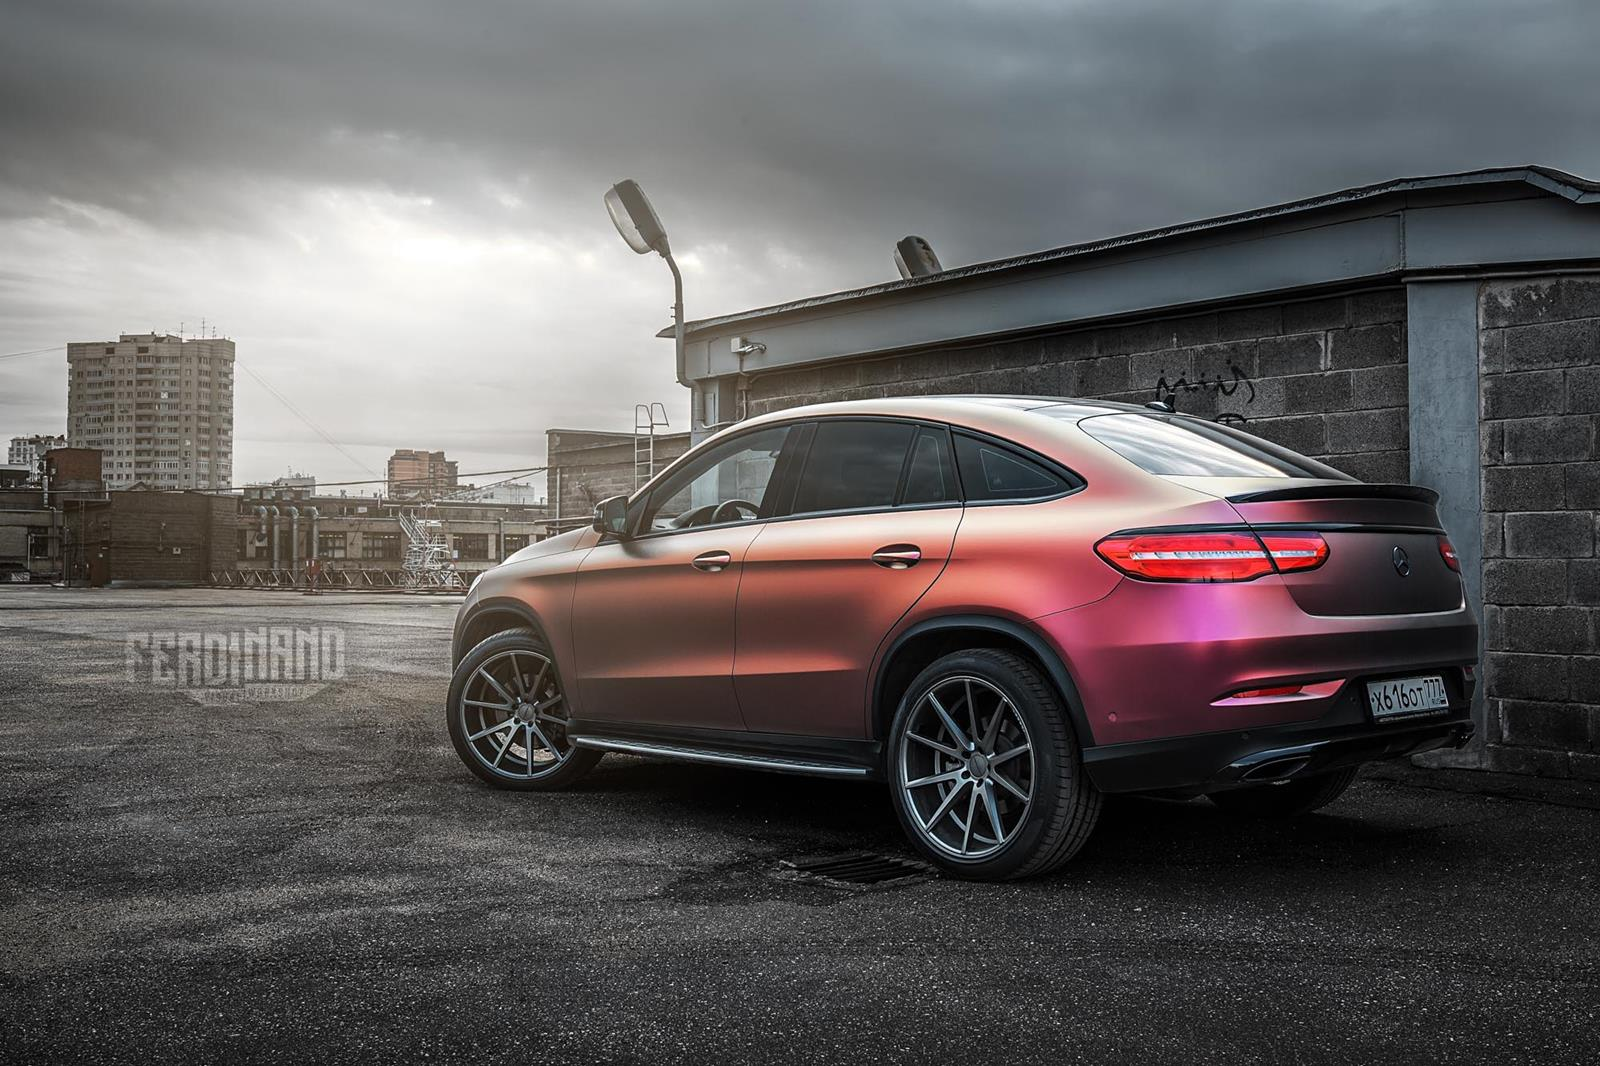 Mercedes benz w292 gle coupe vfs1 vossen wheels benztuning for Wheels for mercedes benz